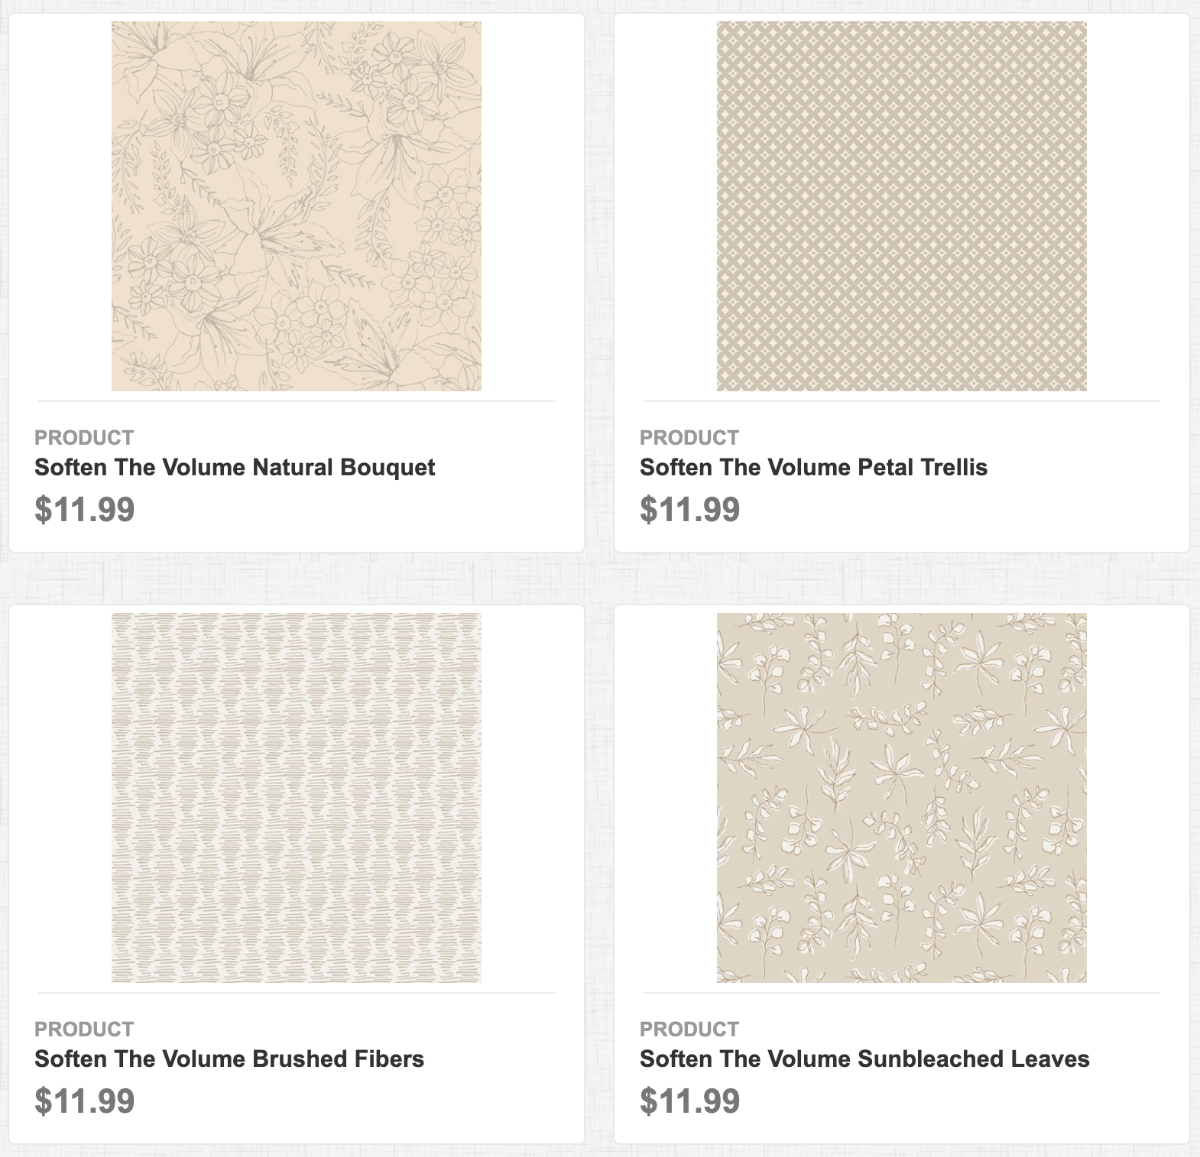 Soften The Volume Natural Bouquet, Petal Trellis, Brushed Fibers, and Sunbleached Leaves